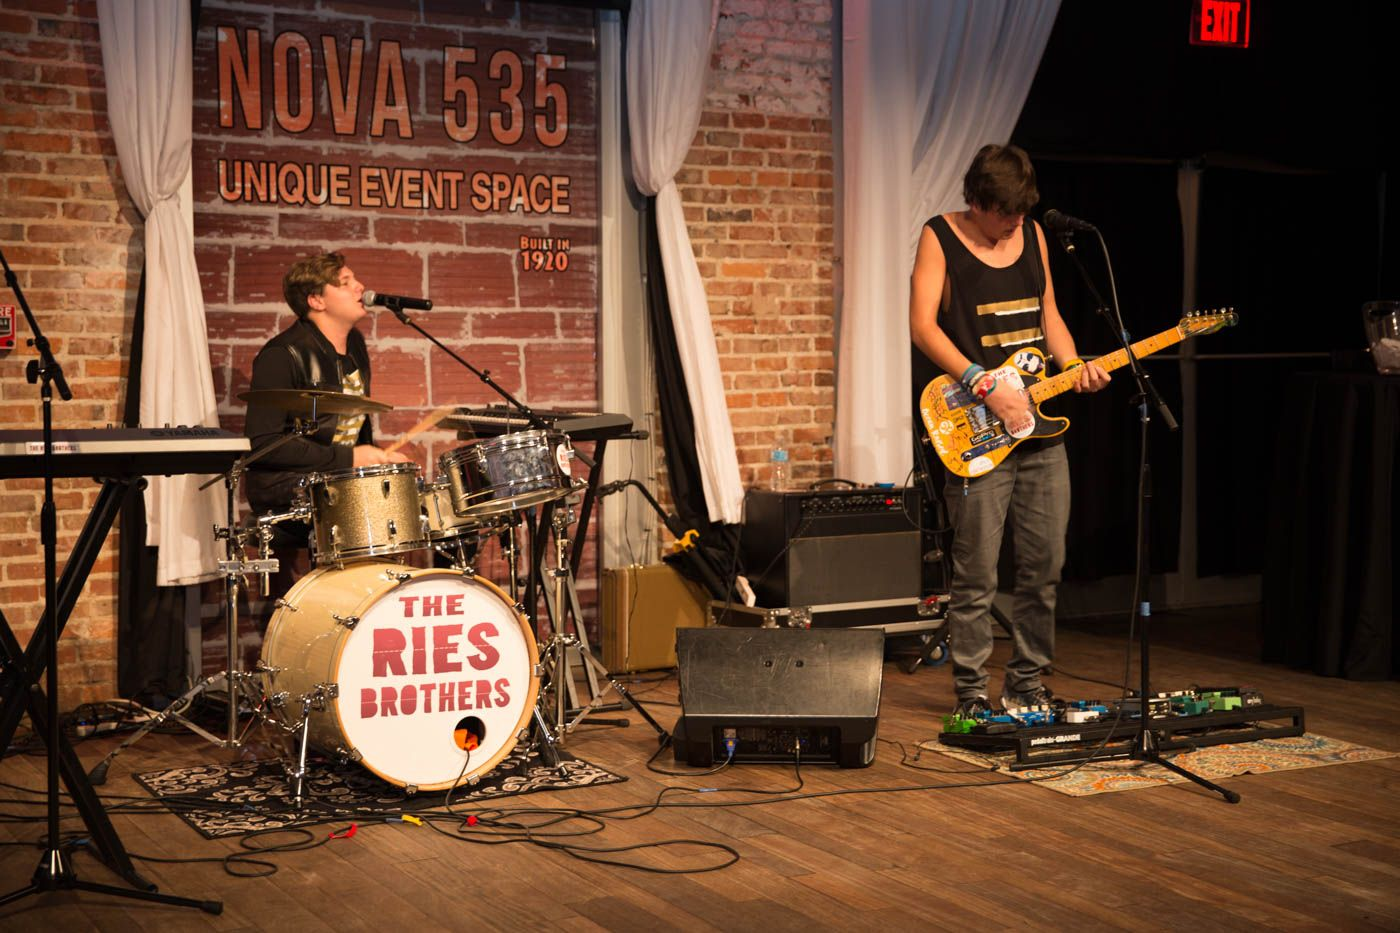 2016-09-17-arts-conservatory-for-teens-fundraiser-at-nova-535-in-dtsp-58